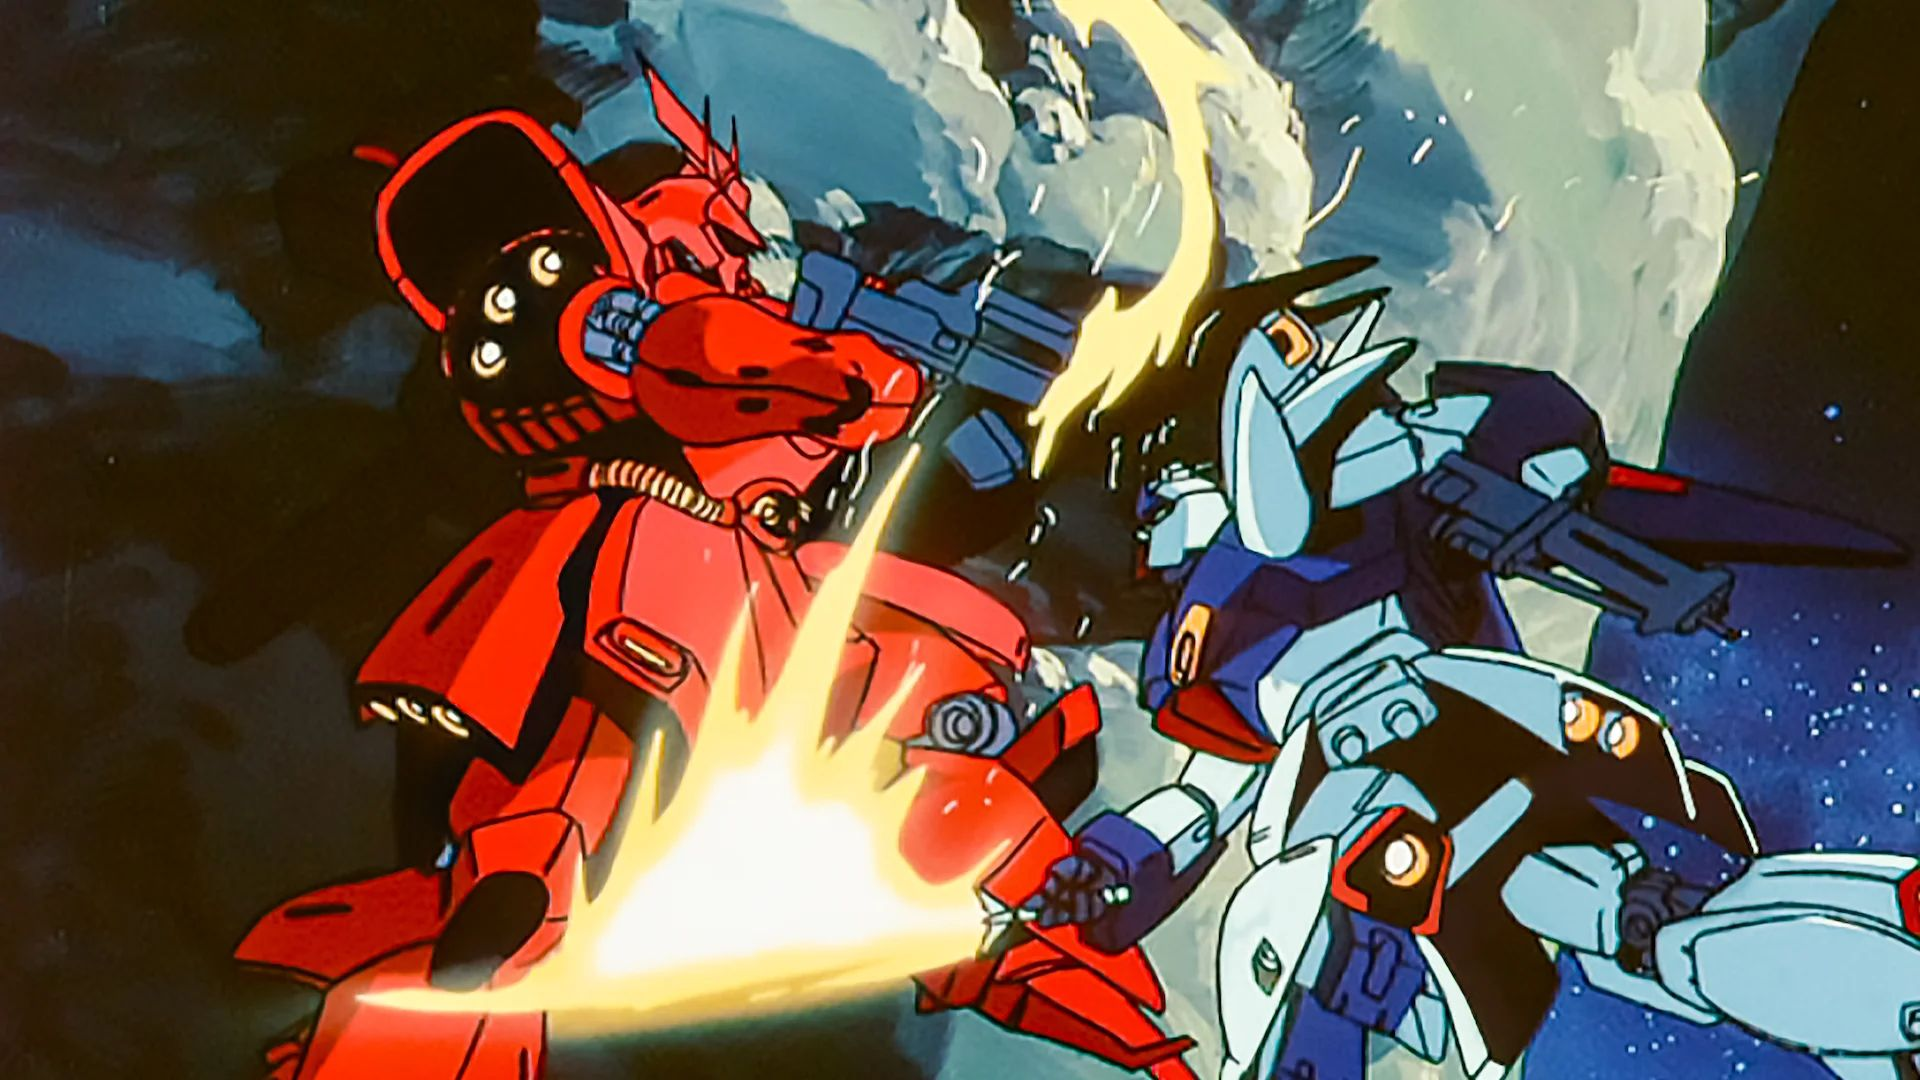 Mobile Suit Gundam Char S Counterattack 1988 Where To Watch It Streaming Online Reelgood